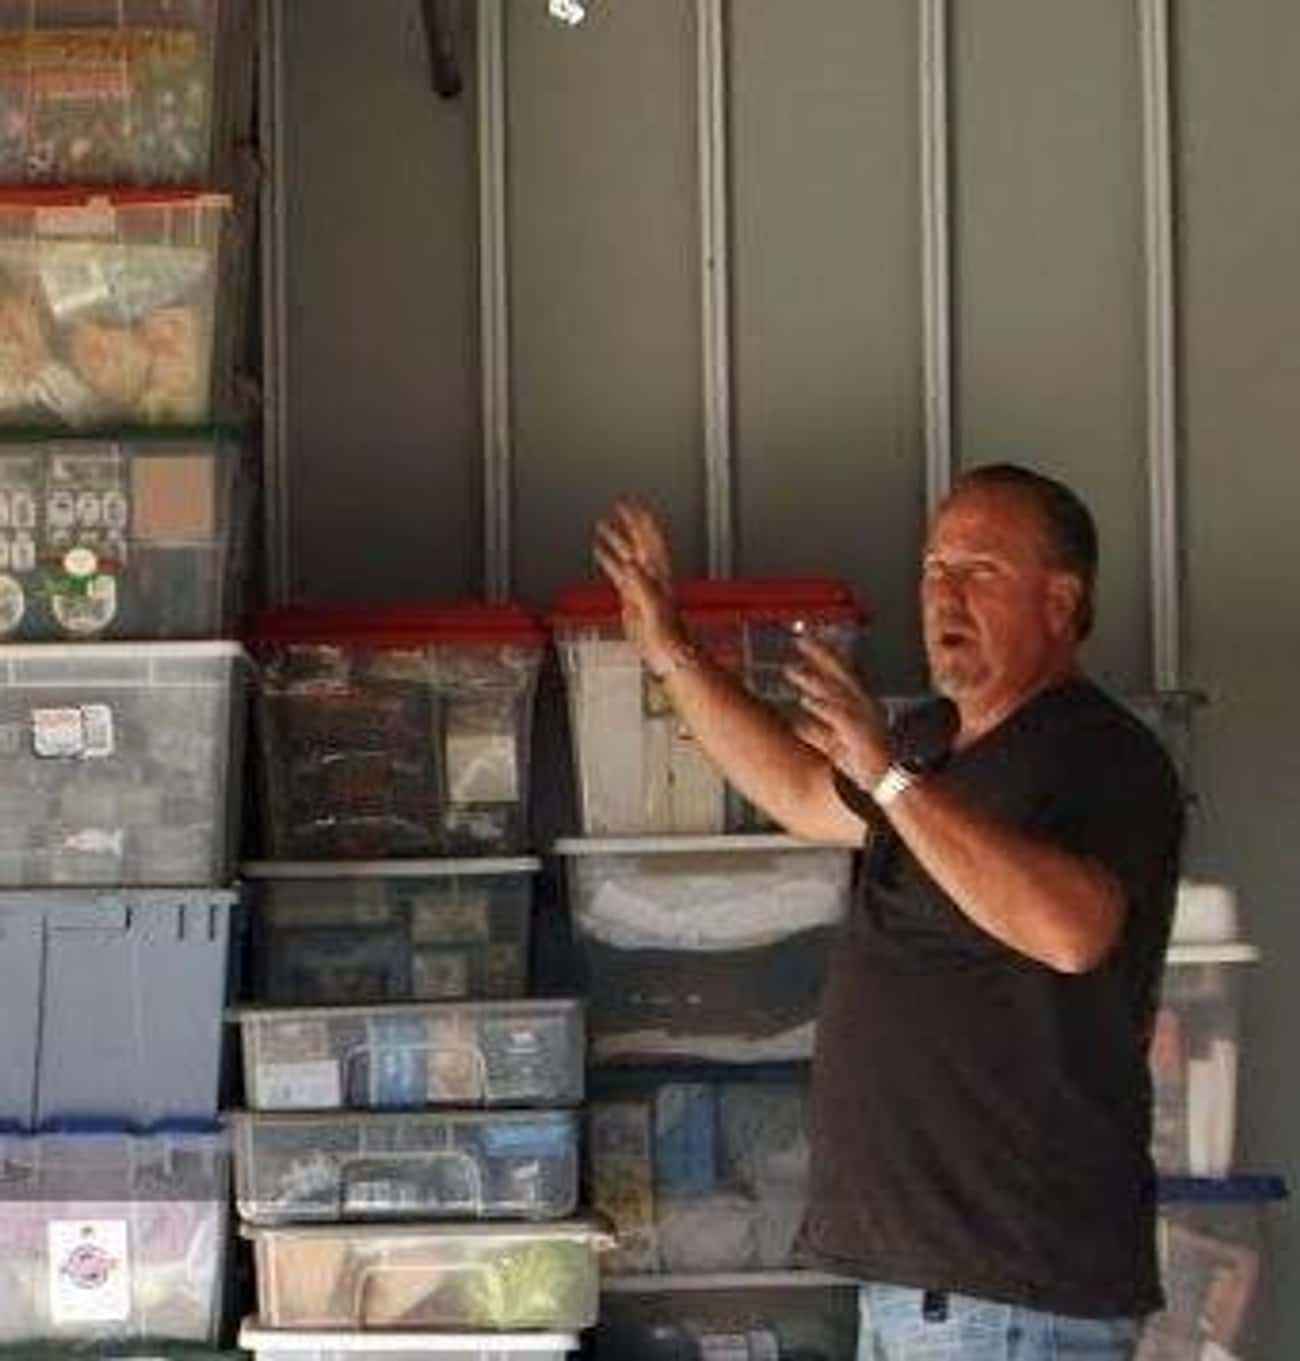 Valuable Items Are Planted is listed (or ranked) 3 on the list Storage Wars Is Yet Another Reality TV Show That Is Almost Completely Staged